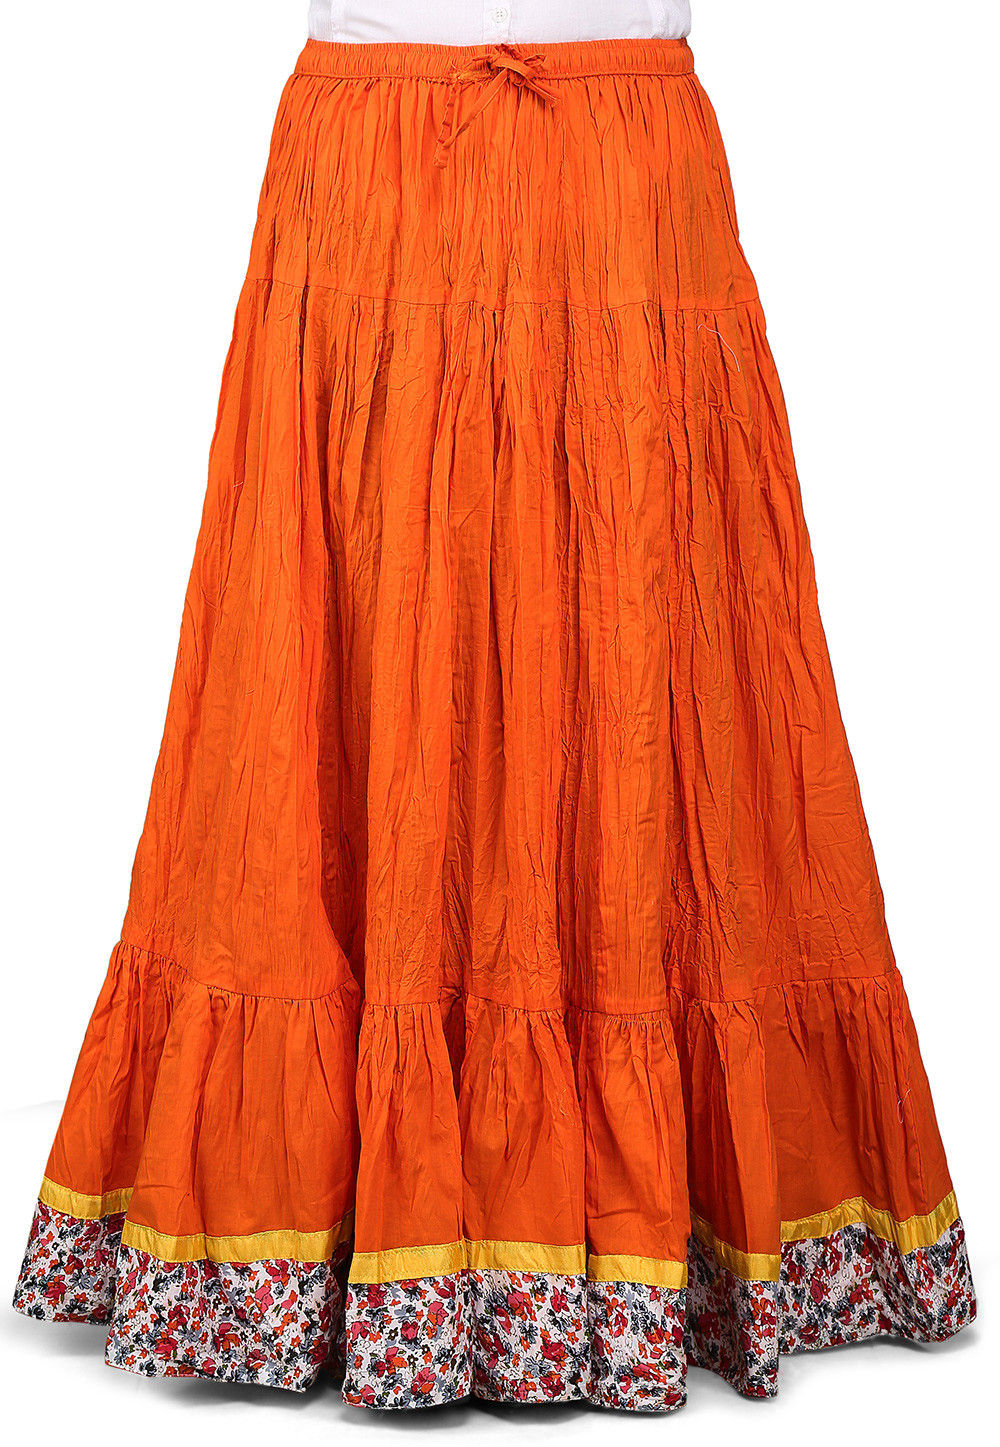 Contrast Patch Border Crushed Cotton Skirt in Orange